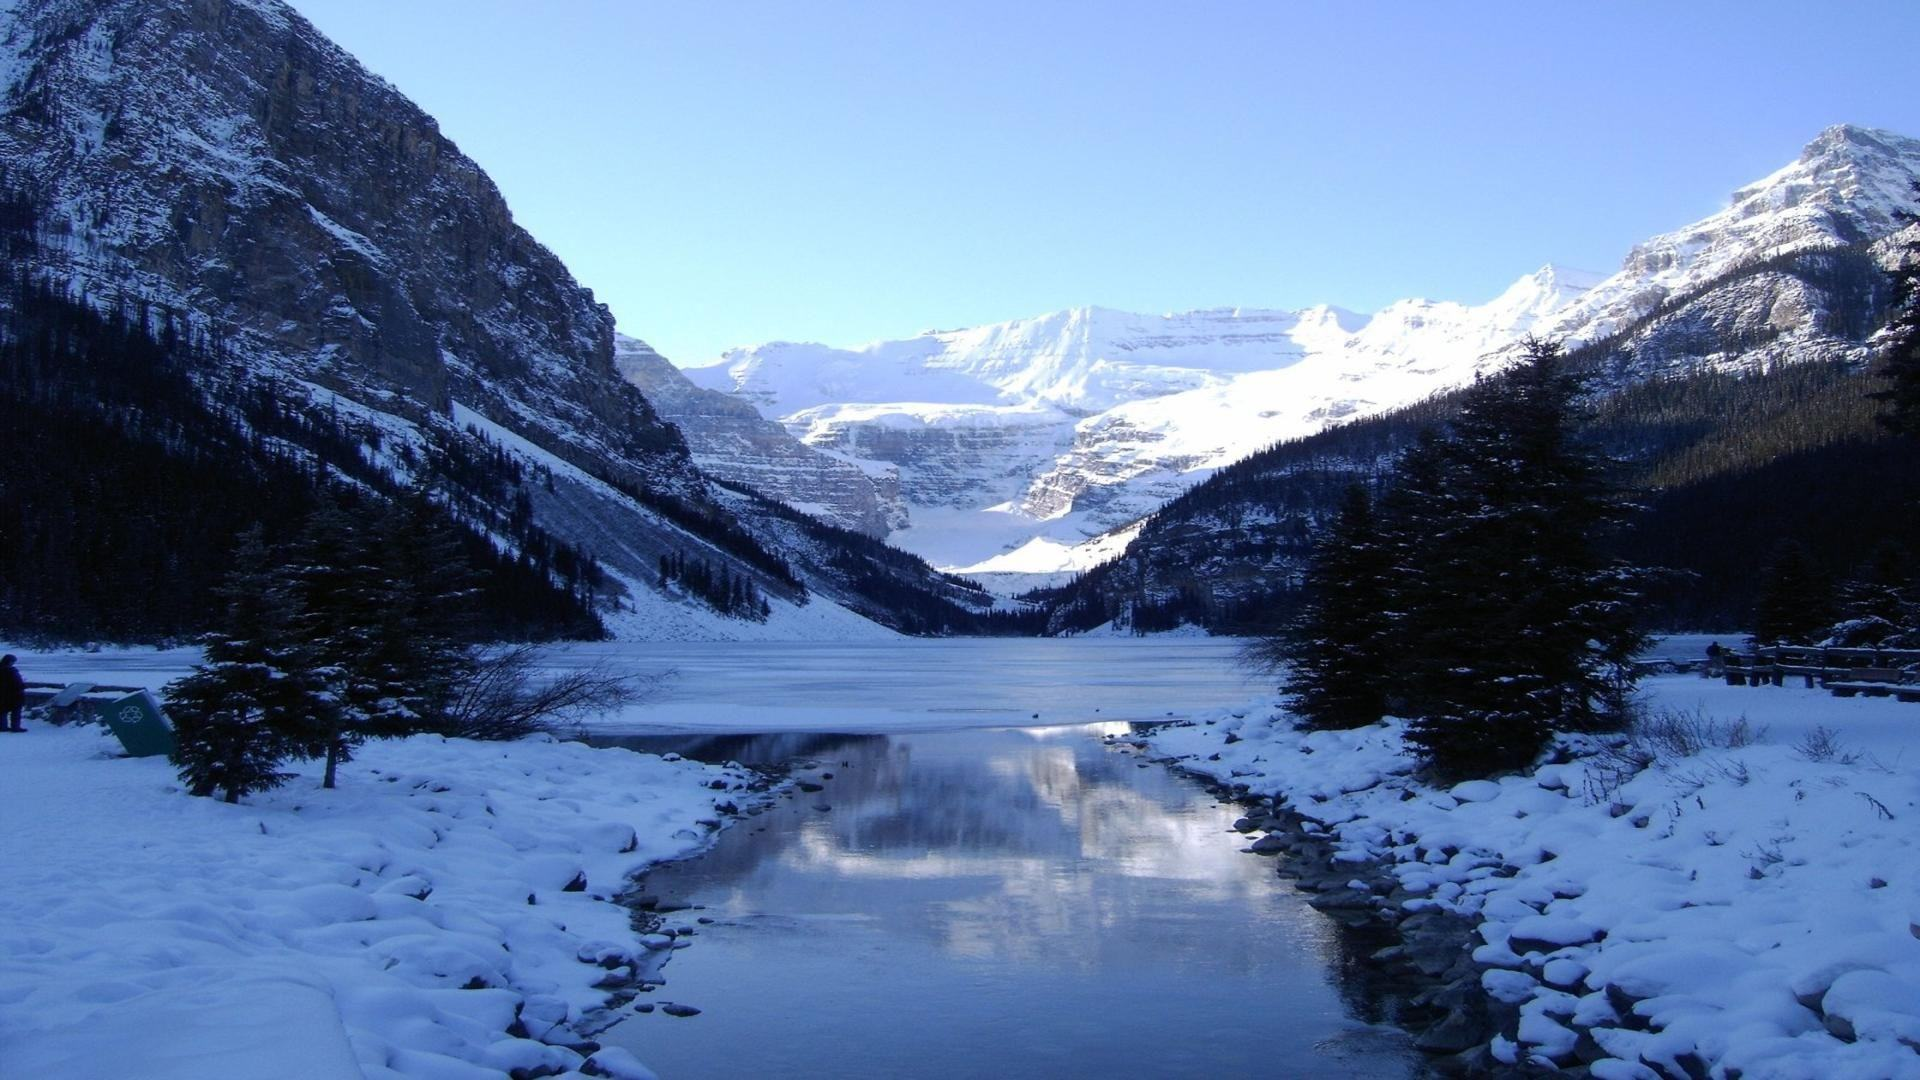 Download Wallpaper   Mountains Canada winter wallpaper desktop 1920x1080